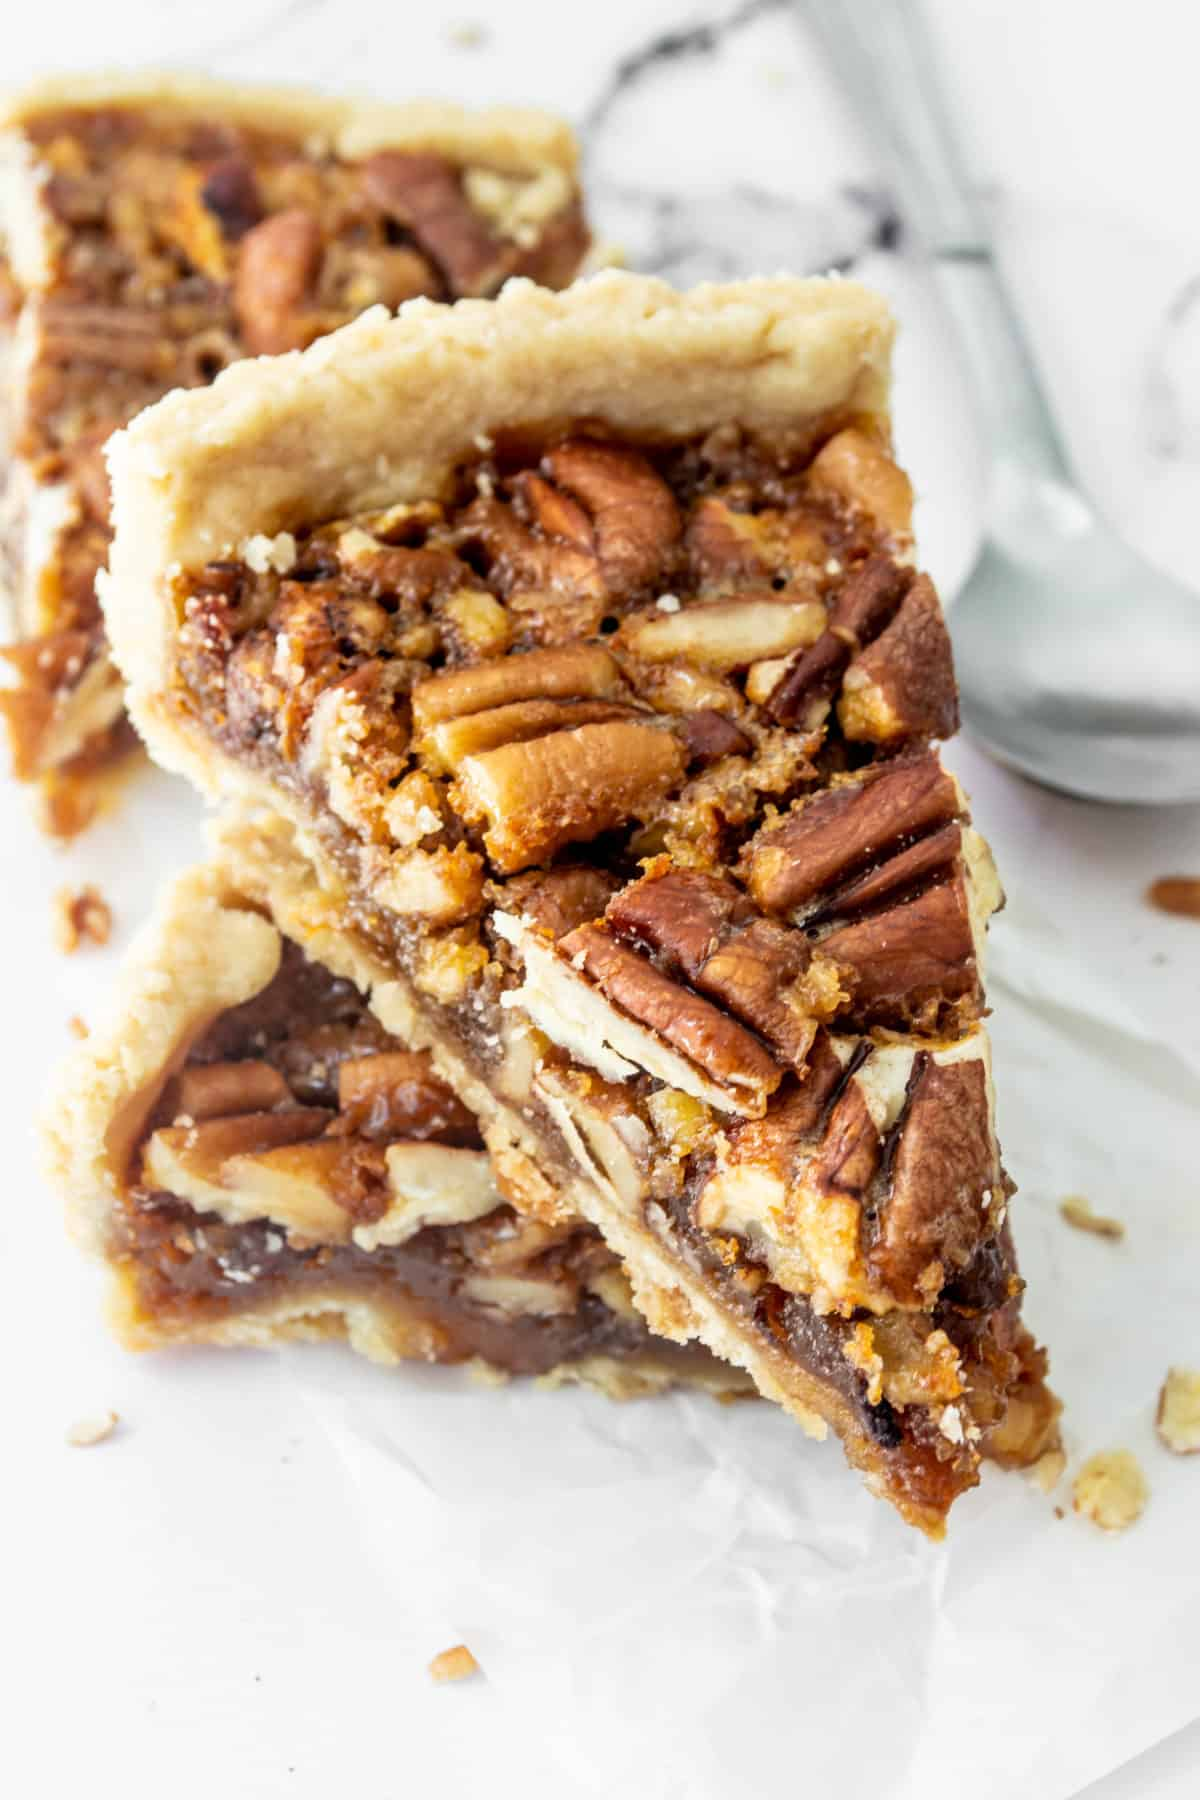 Multiple slices of pecan pie on a table.